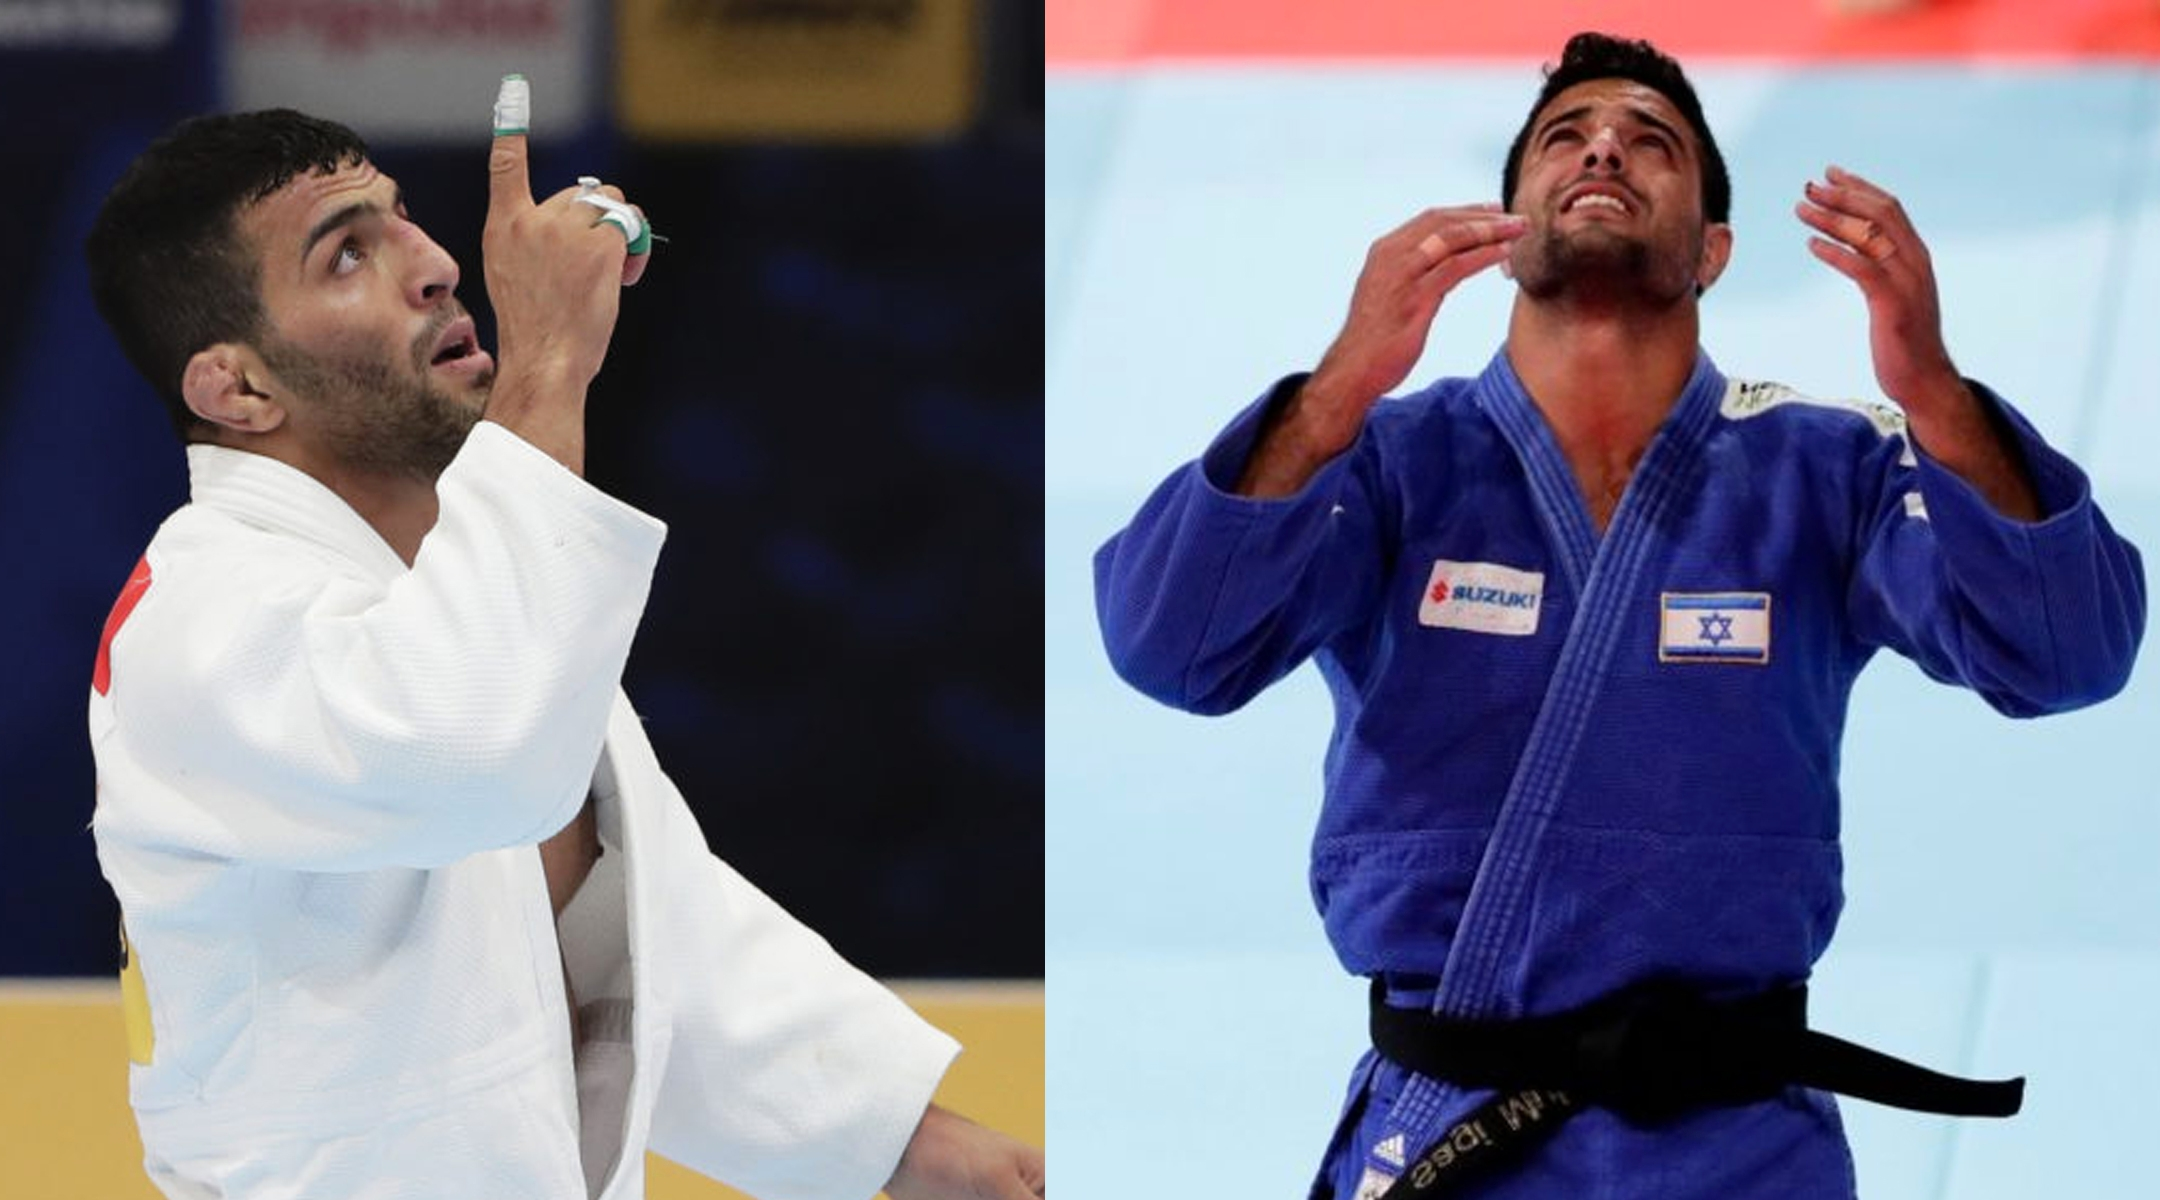 Story of friendship between Israeli and Iranian judo champions being made into TV show